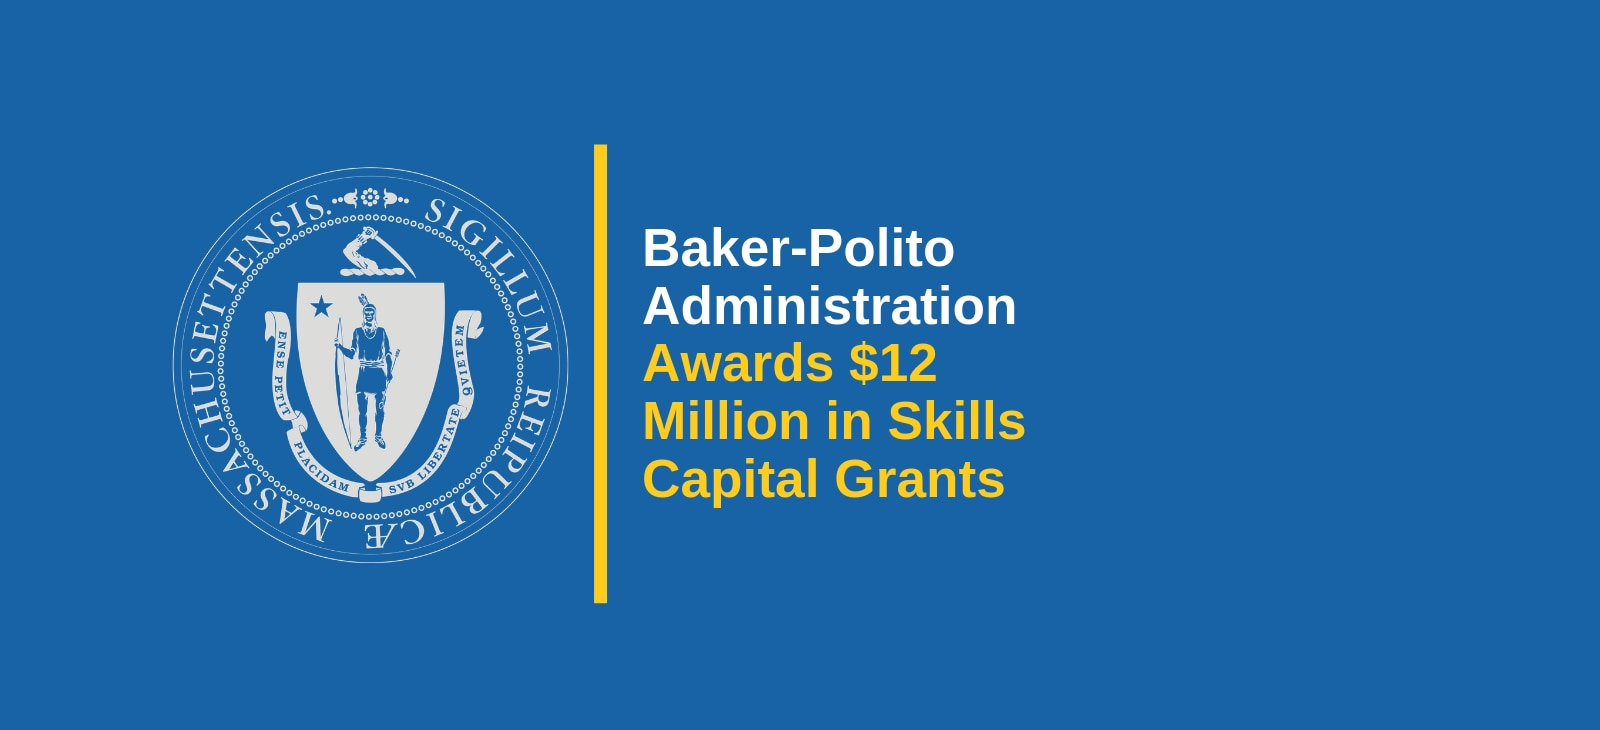 Baker-Polito Administration Awards $12 Million in Skills Capital Grants